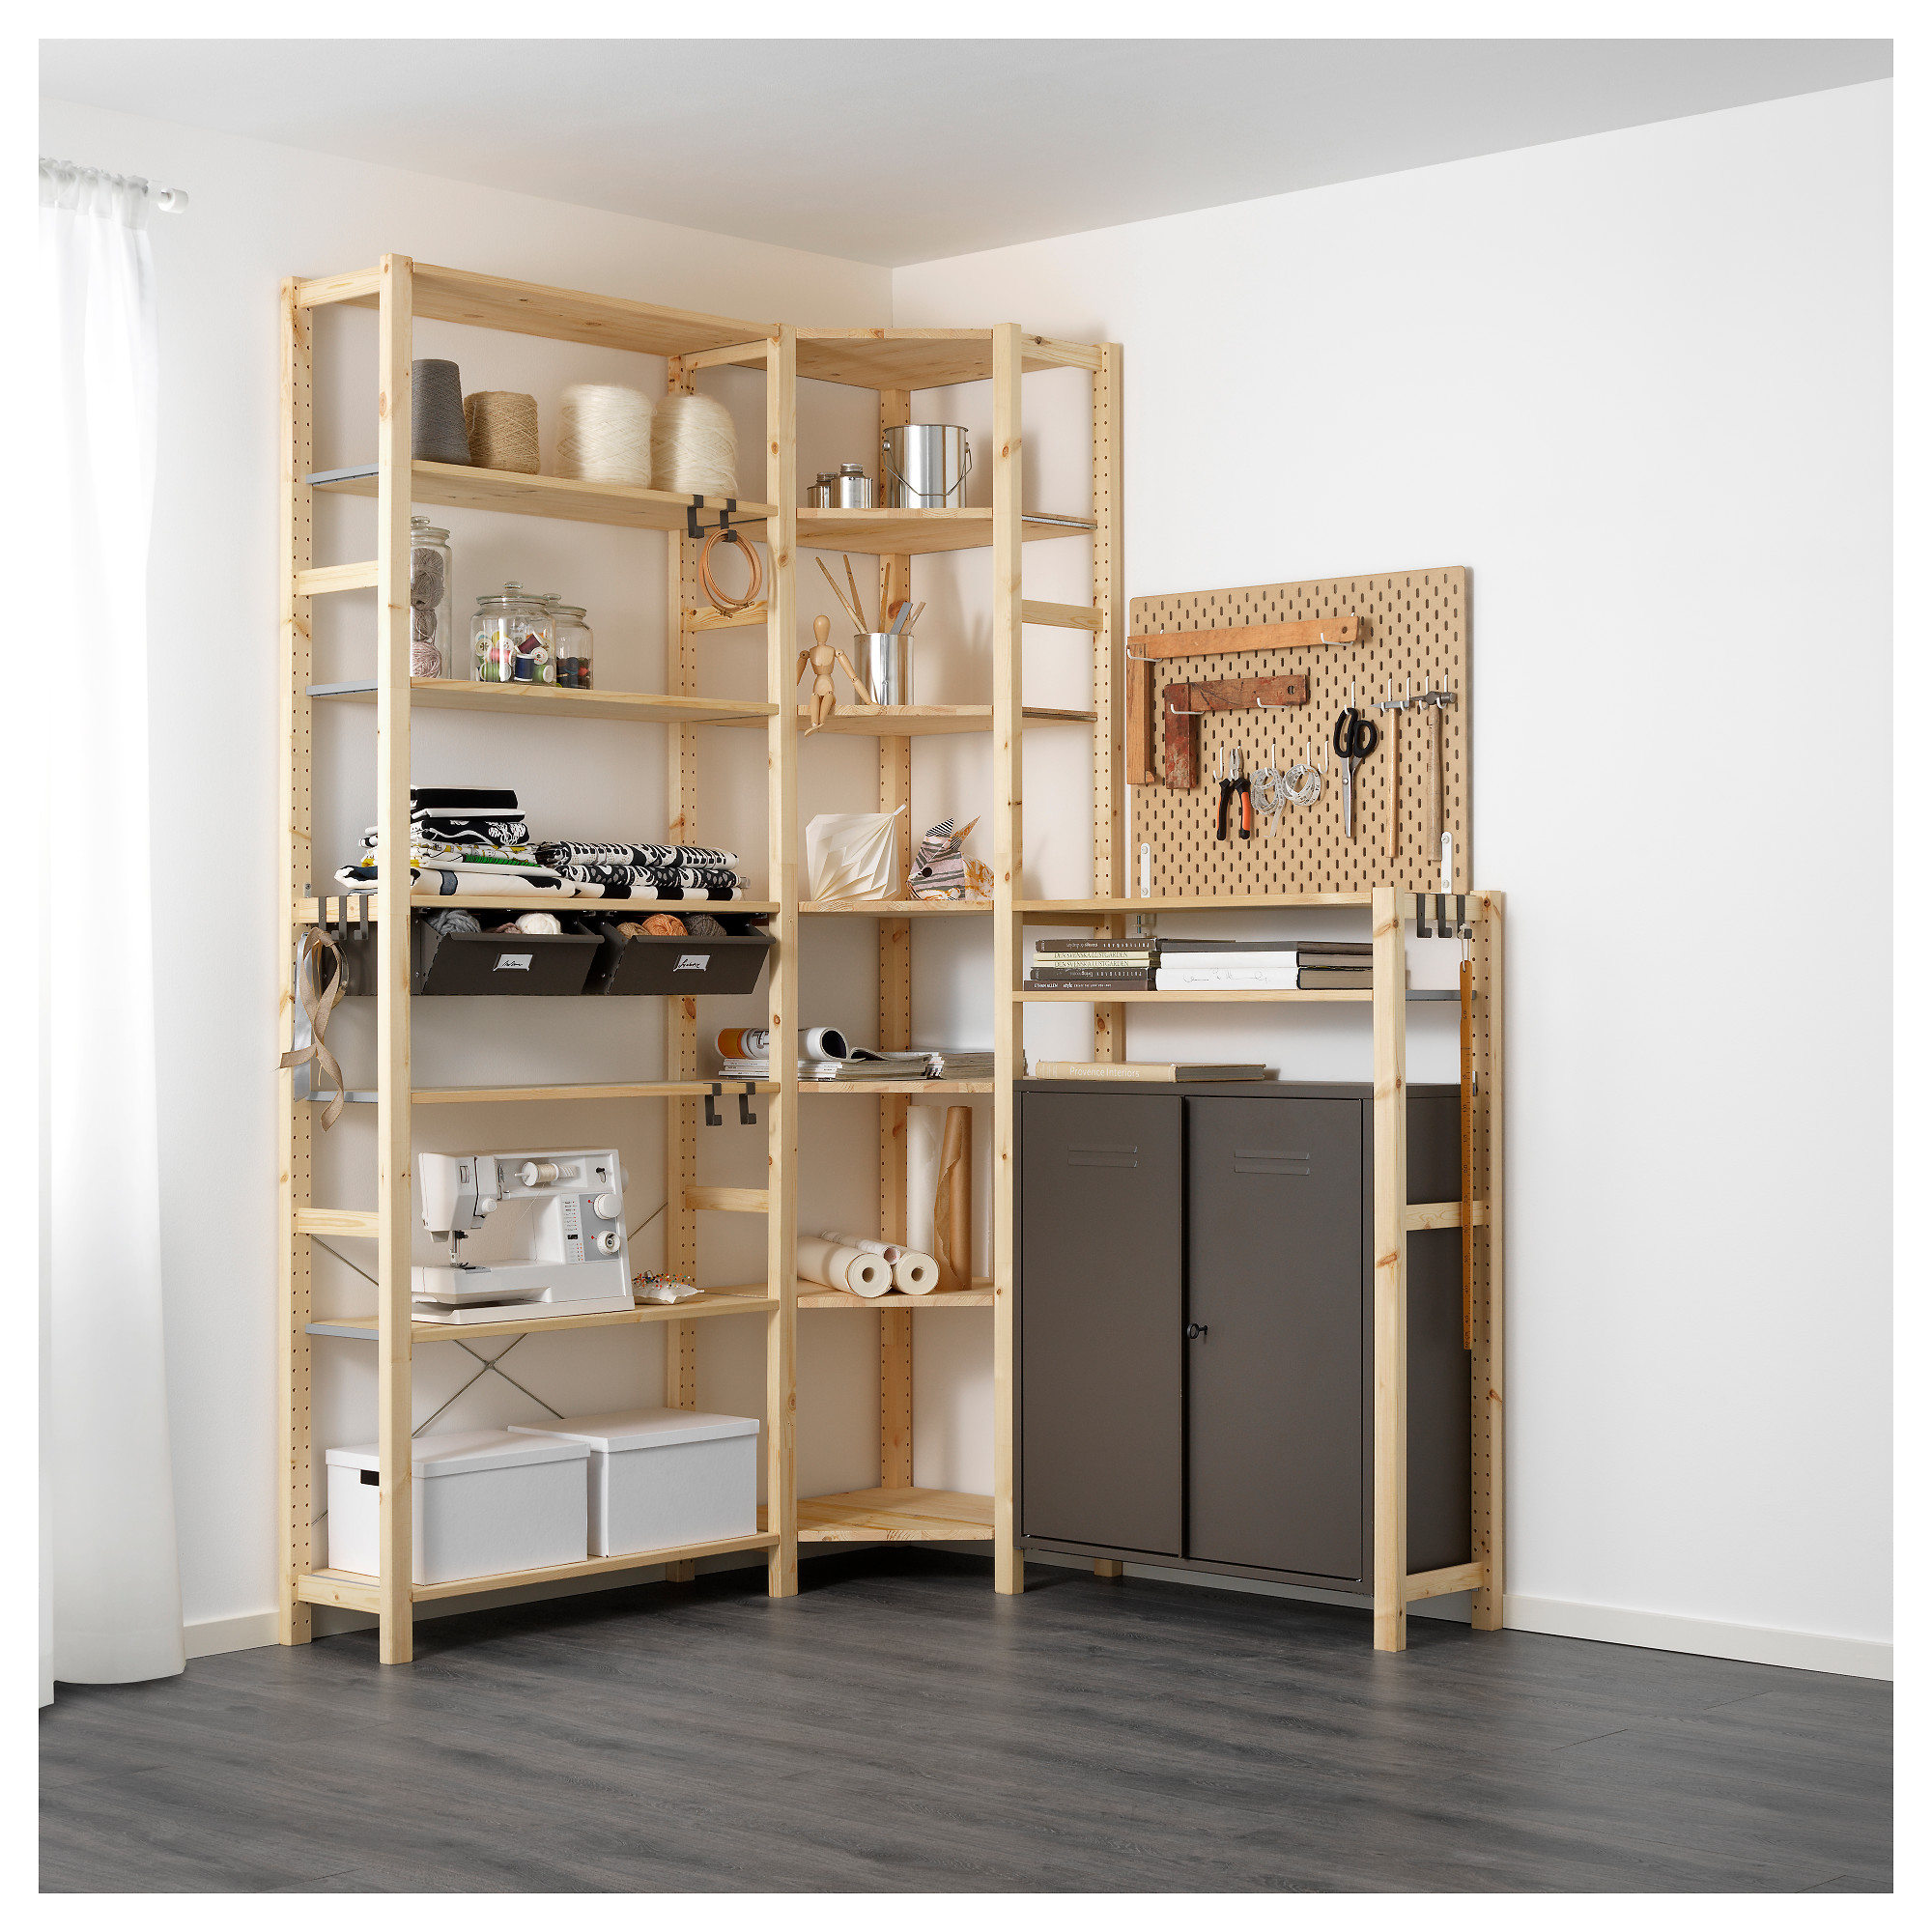 Ikea Ivar Küche Ivar 3 Section Shelving Unit W Cabinets In 2019 Home